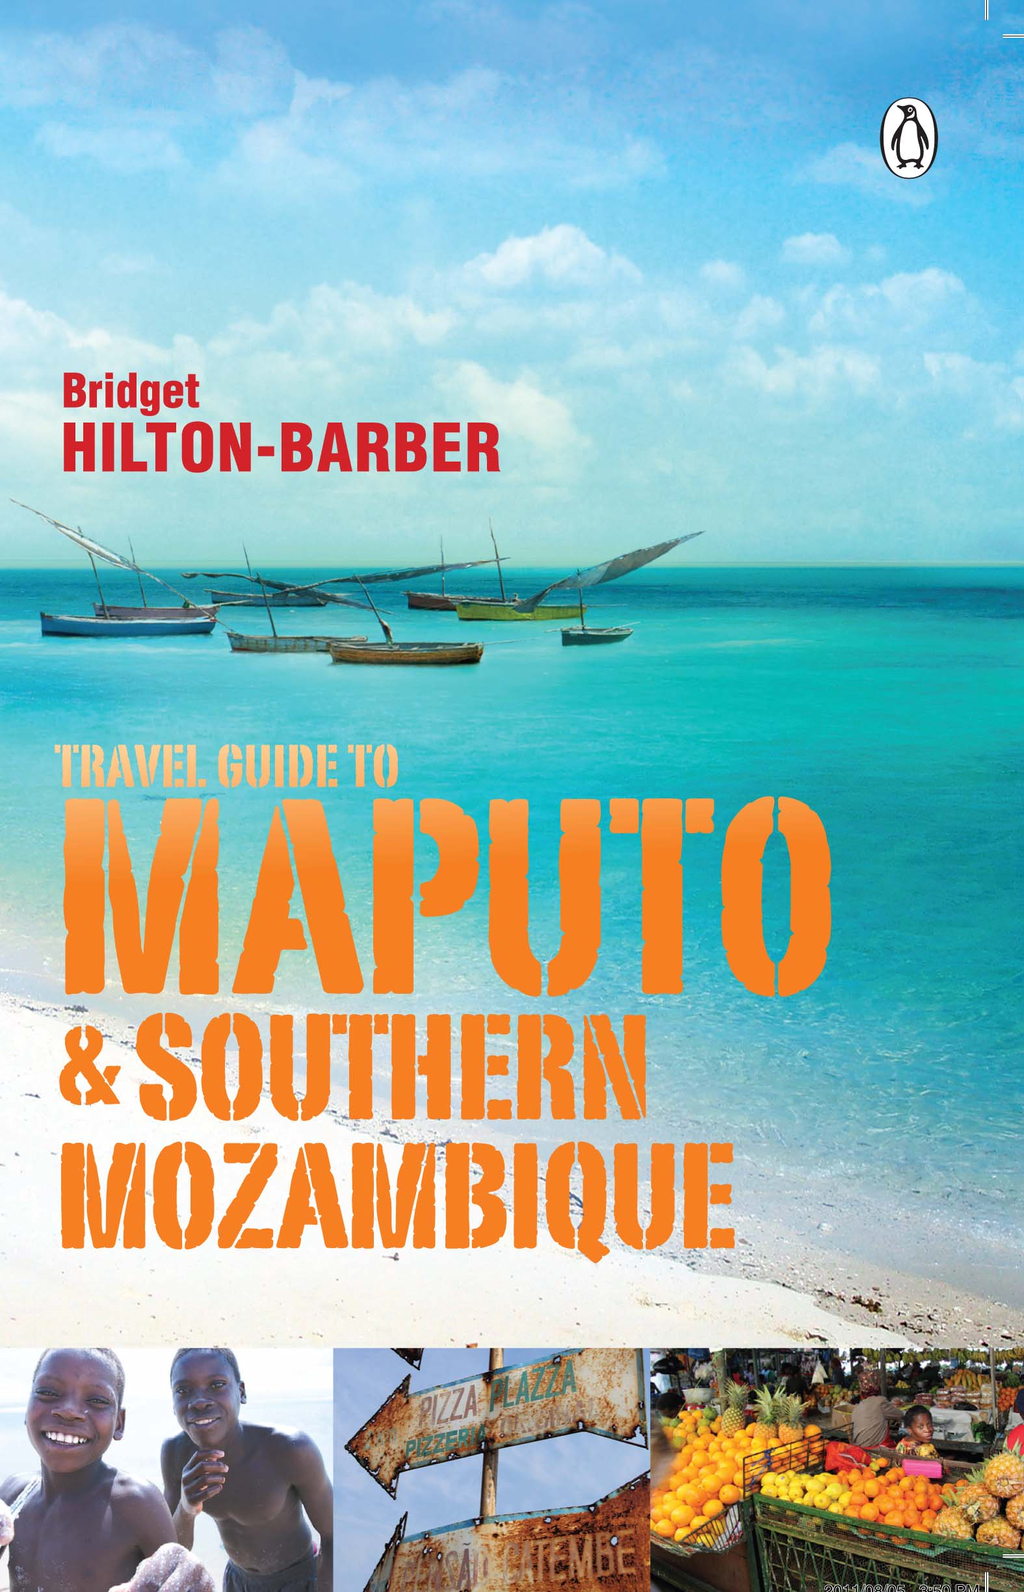 Travel Guide to Maputo and Southern Mozambique By: Bridget Hilton-Barber